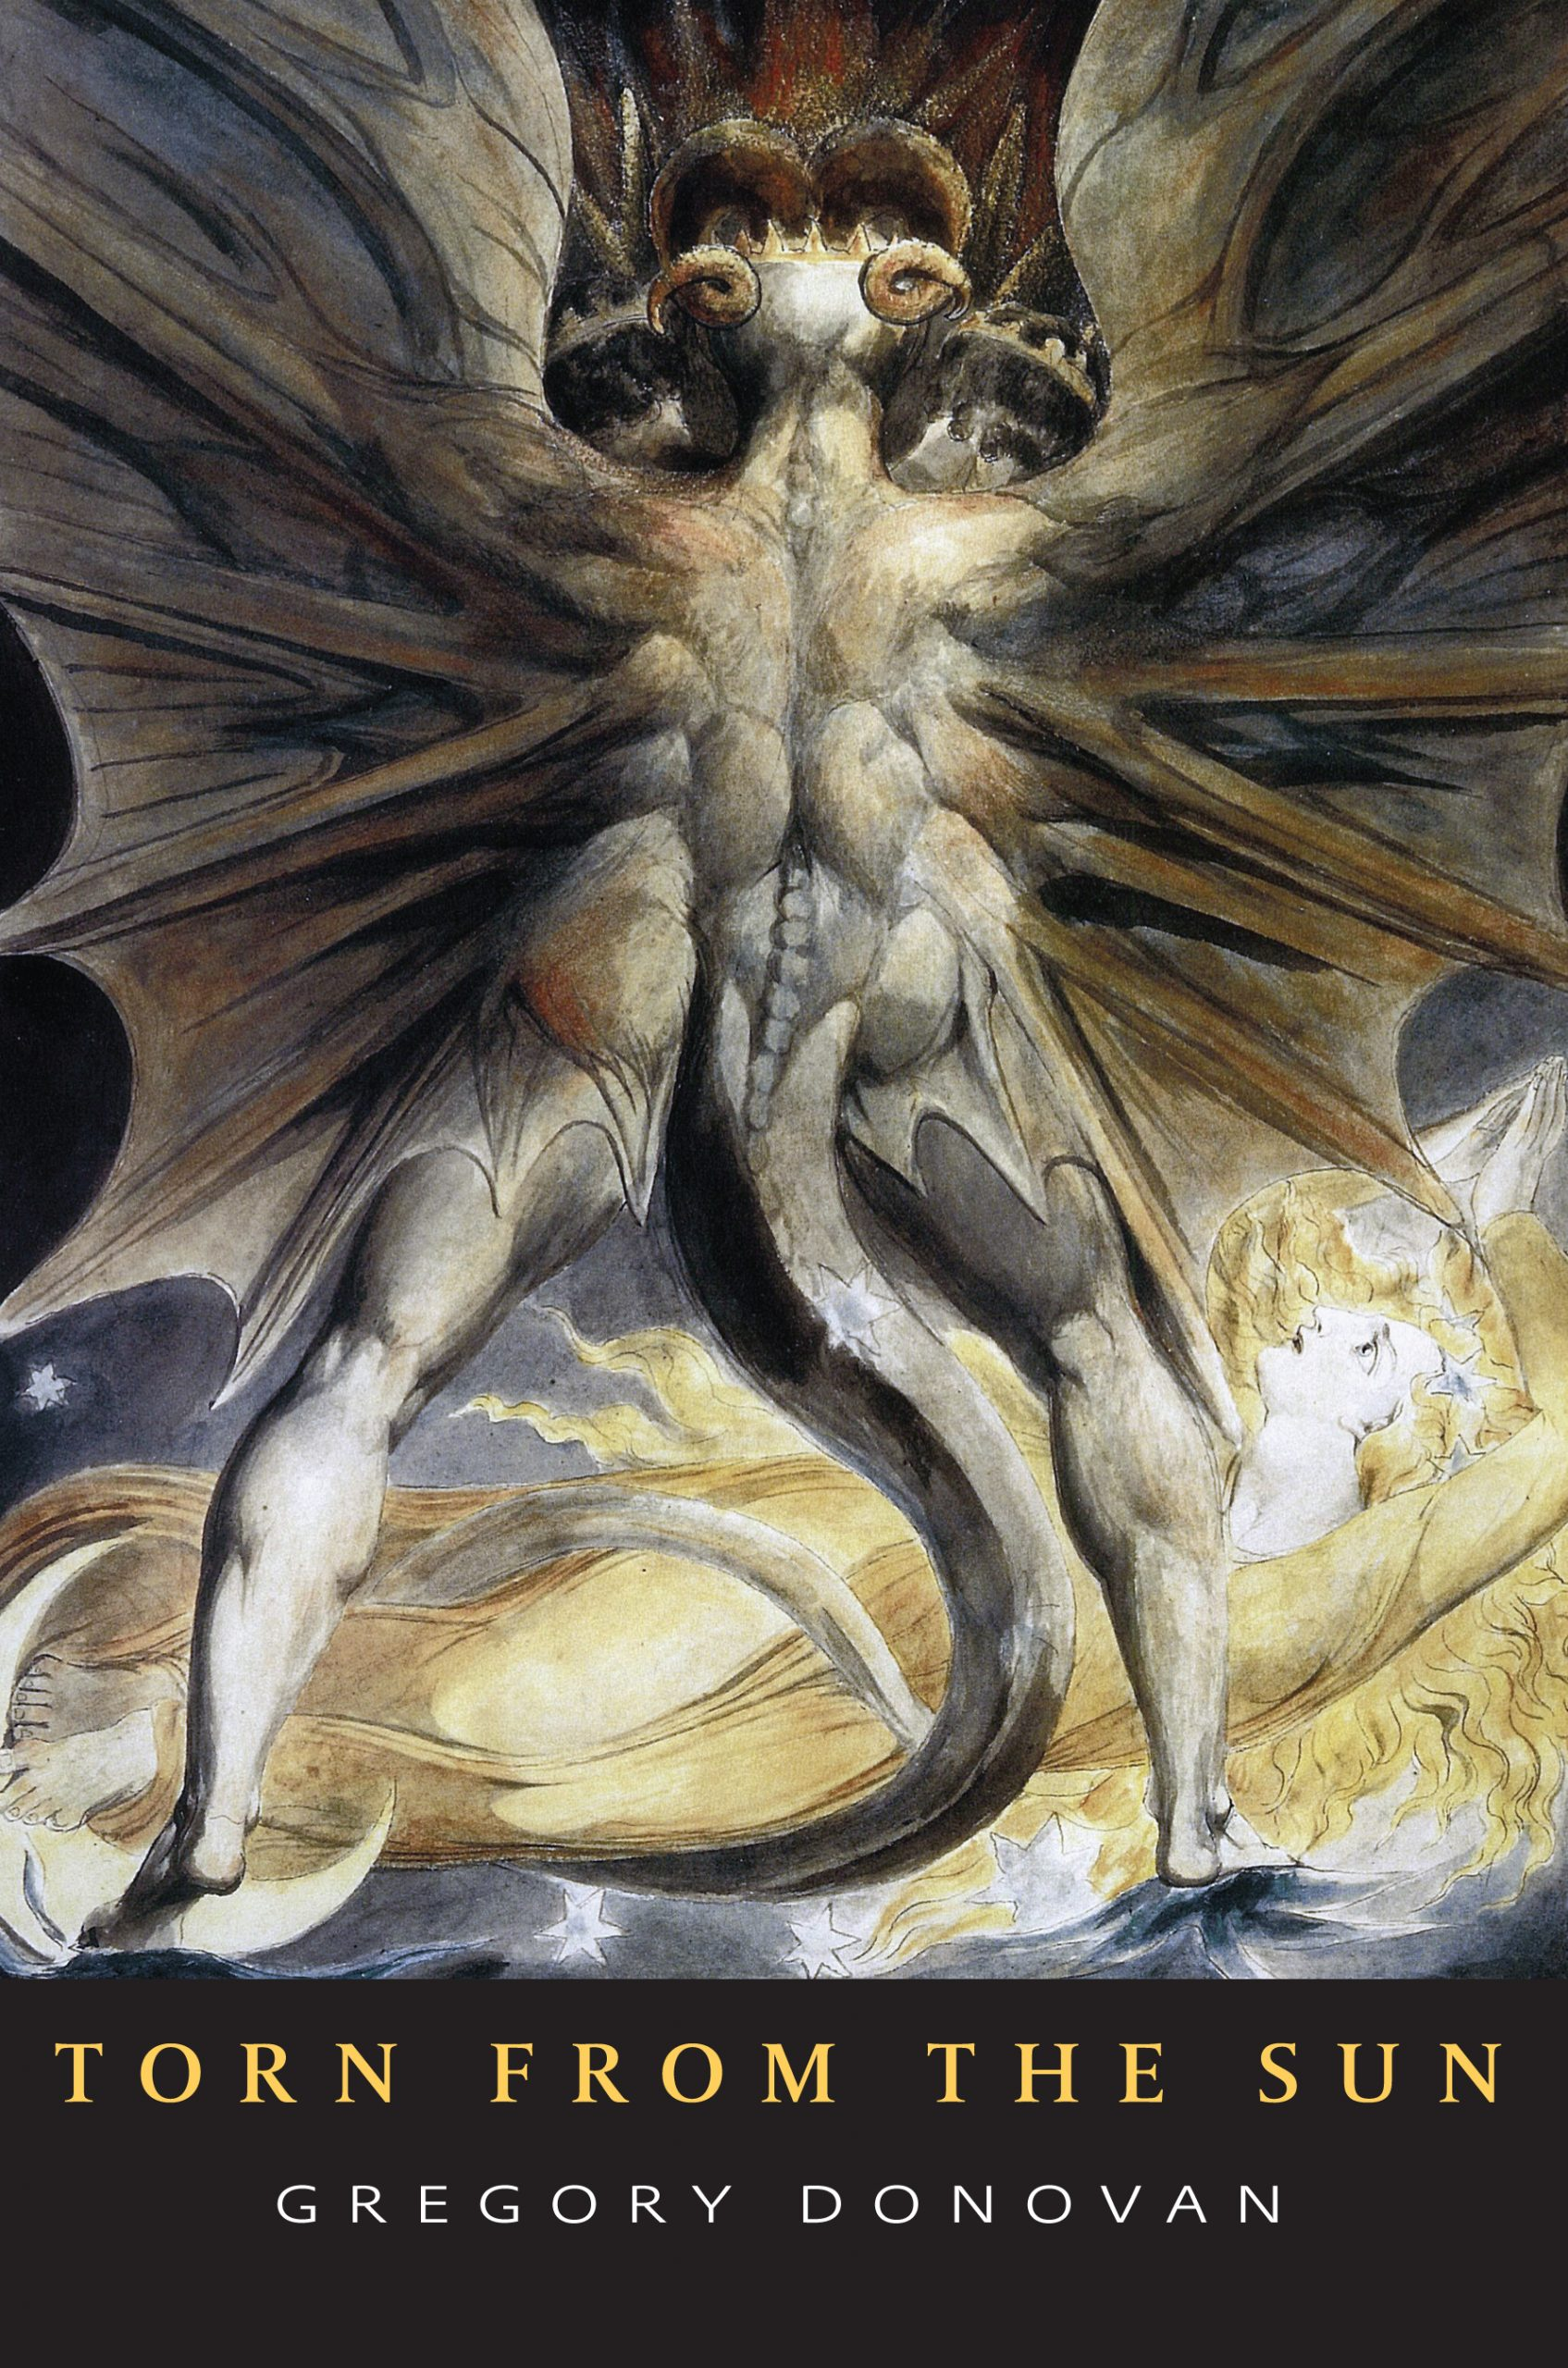 """A large, gray alien figure with wings is against a blue and yellow background, yellow text reads """"Torn From the Sun"""" and white text reads """"Gregory Donovan"""""""